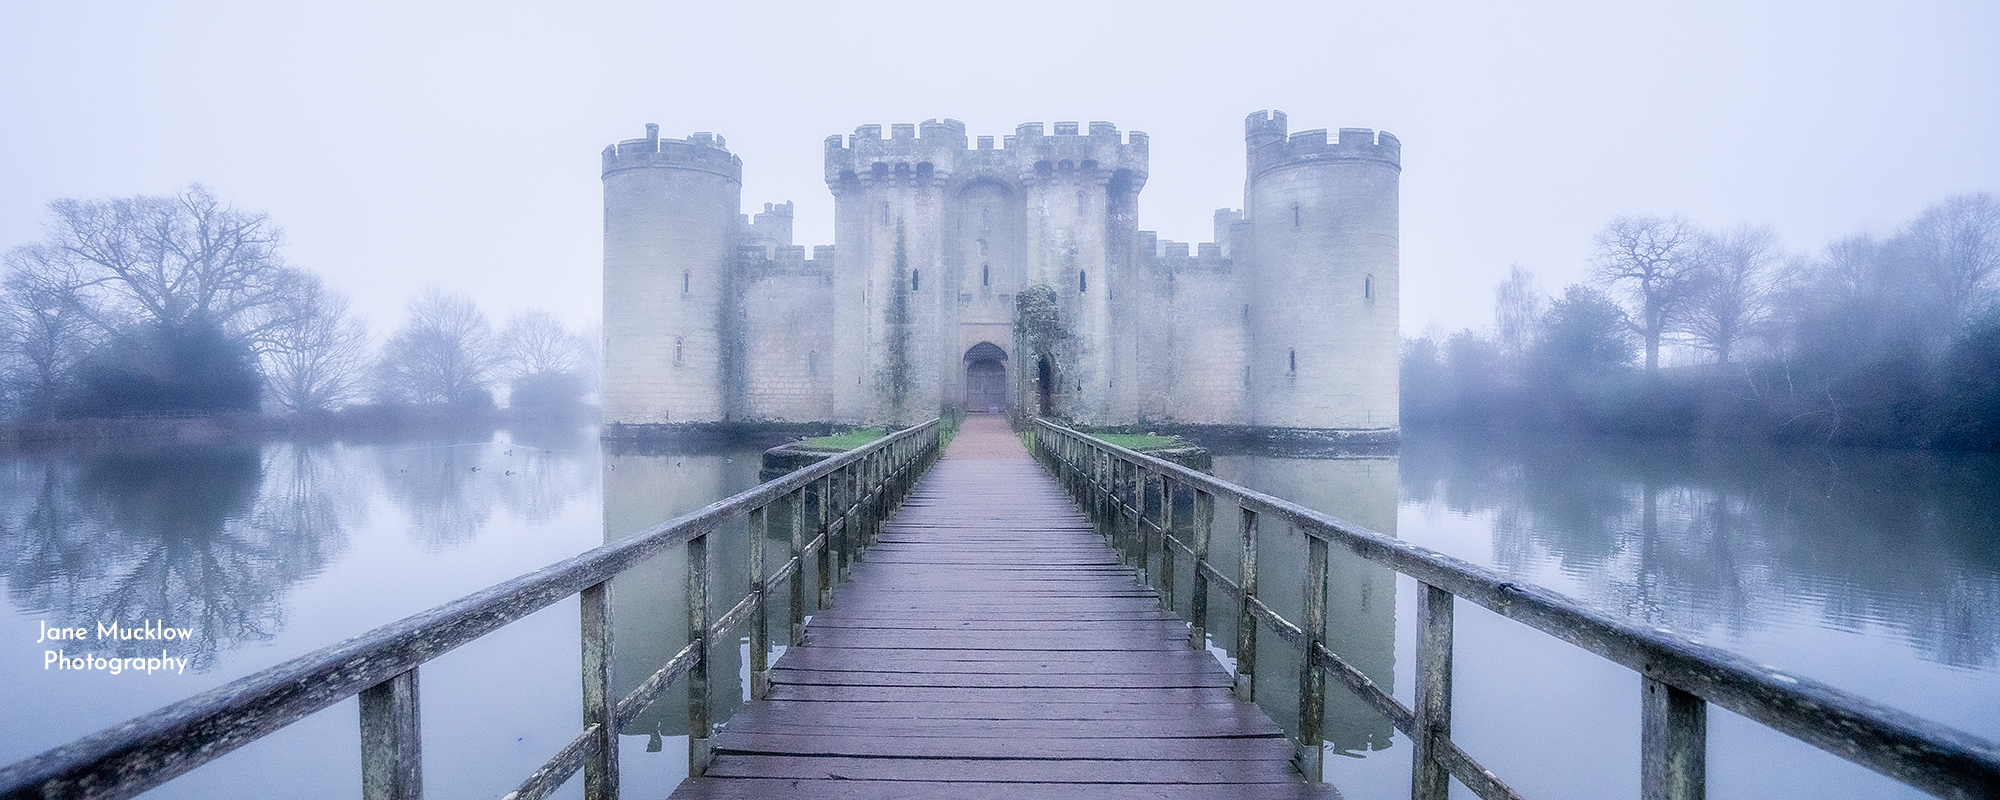 Photo of Bodium Castle in the mist by Jane Mucklow